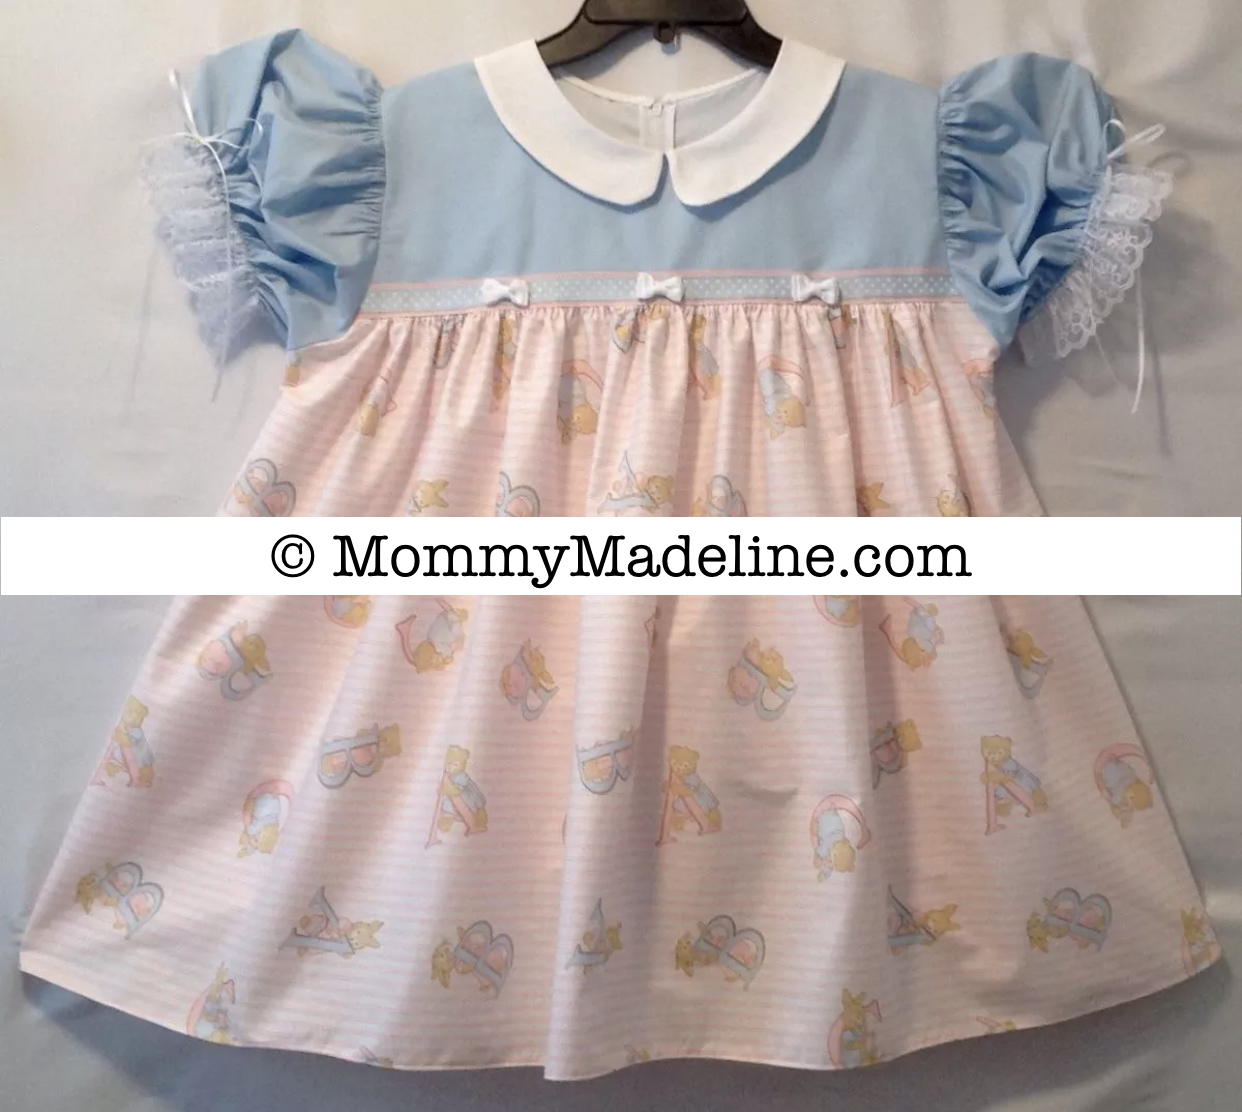 A lovely sissy baby dress with alphabet letters